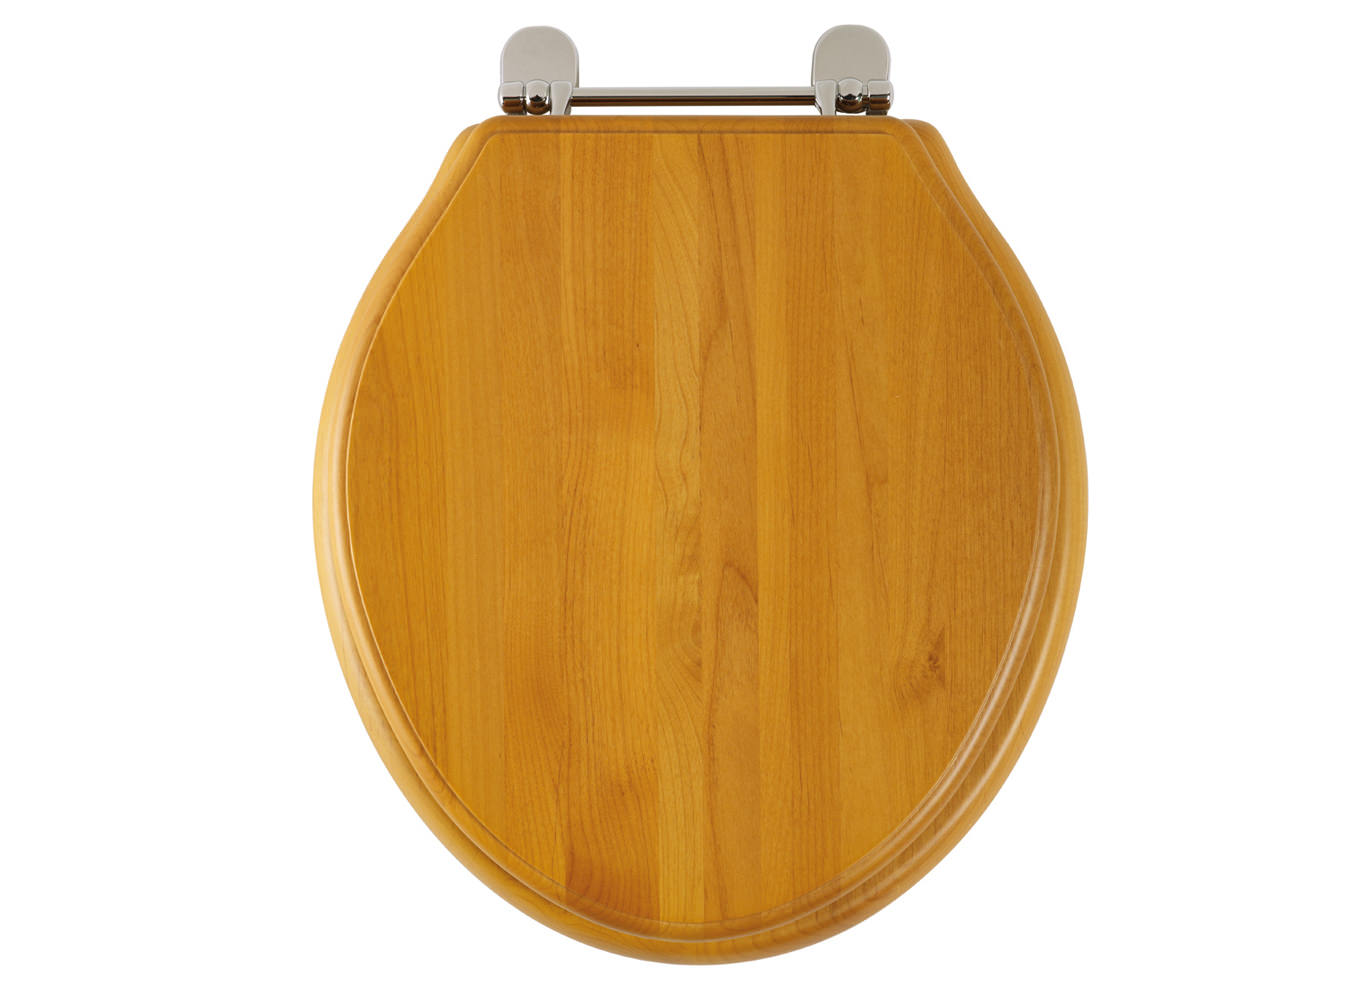 Roper Rhodes Greenwich Antique Pine Solid Wood Toilet Seat 8099A